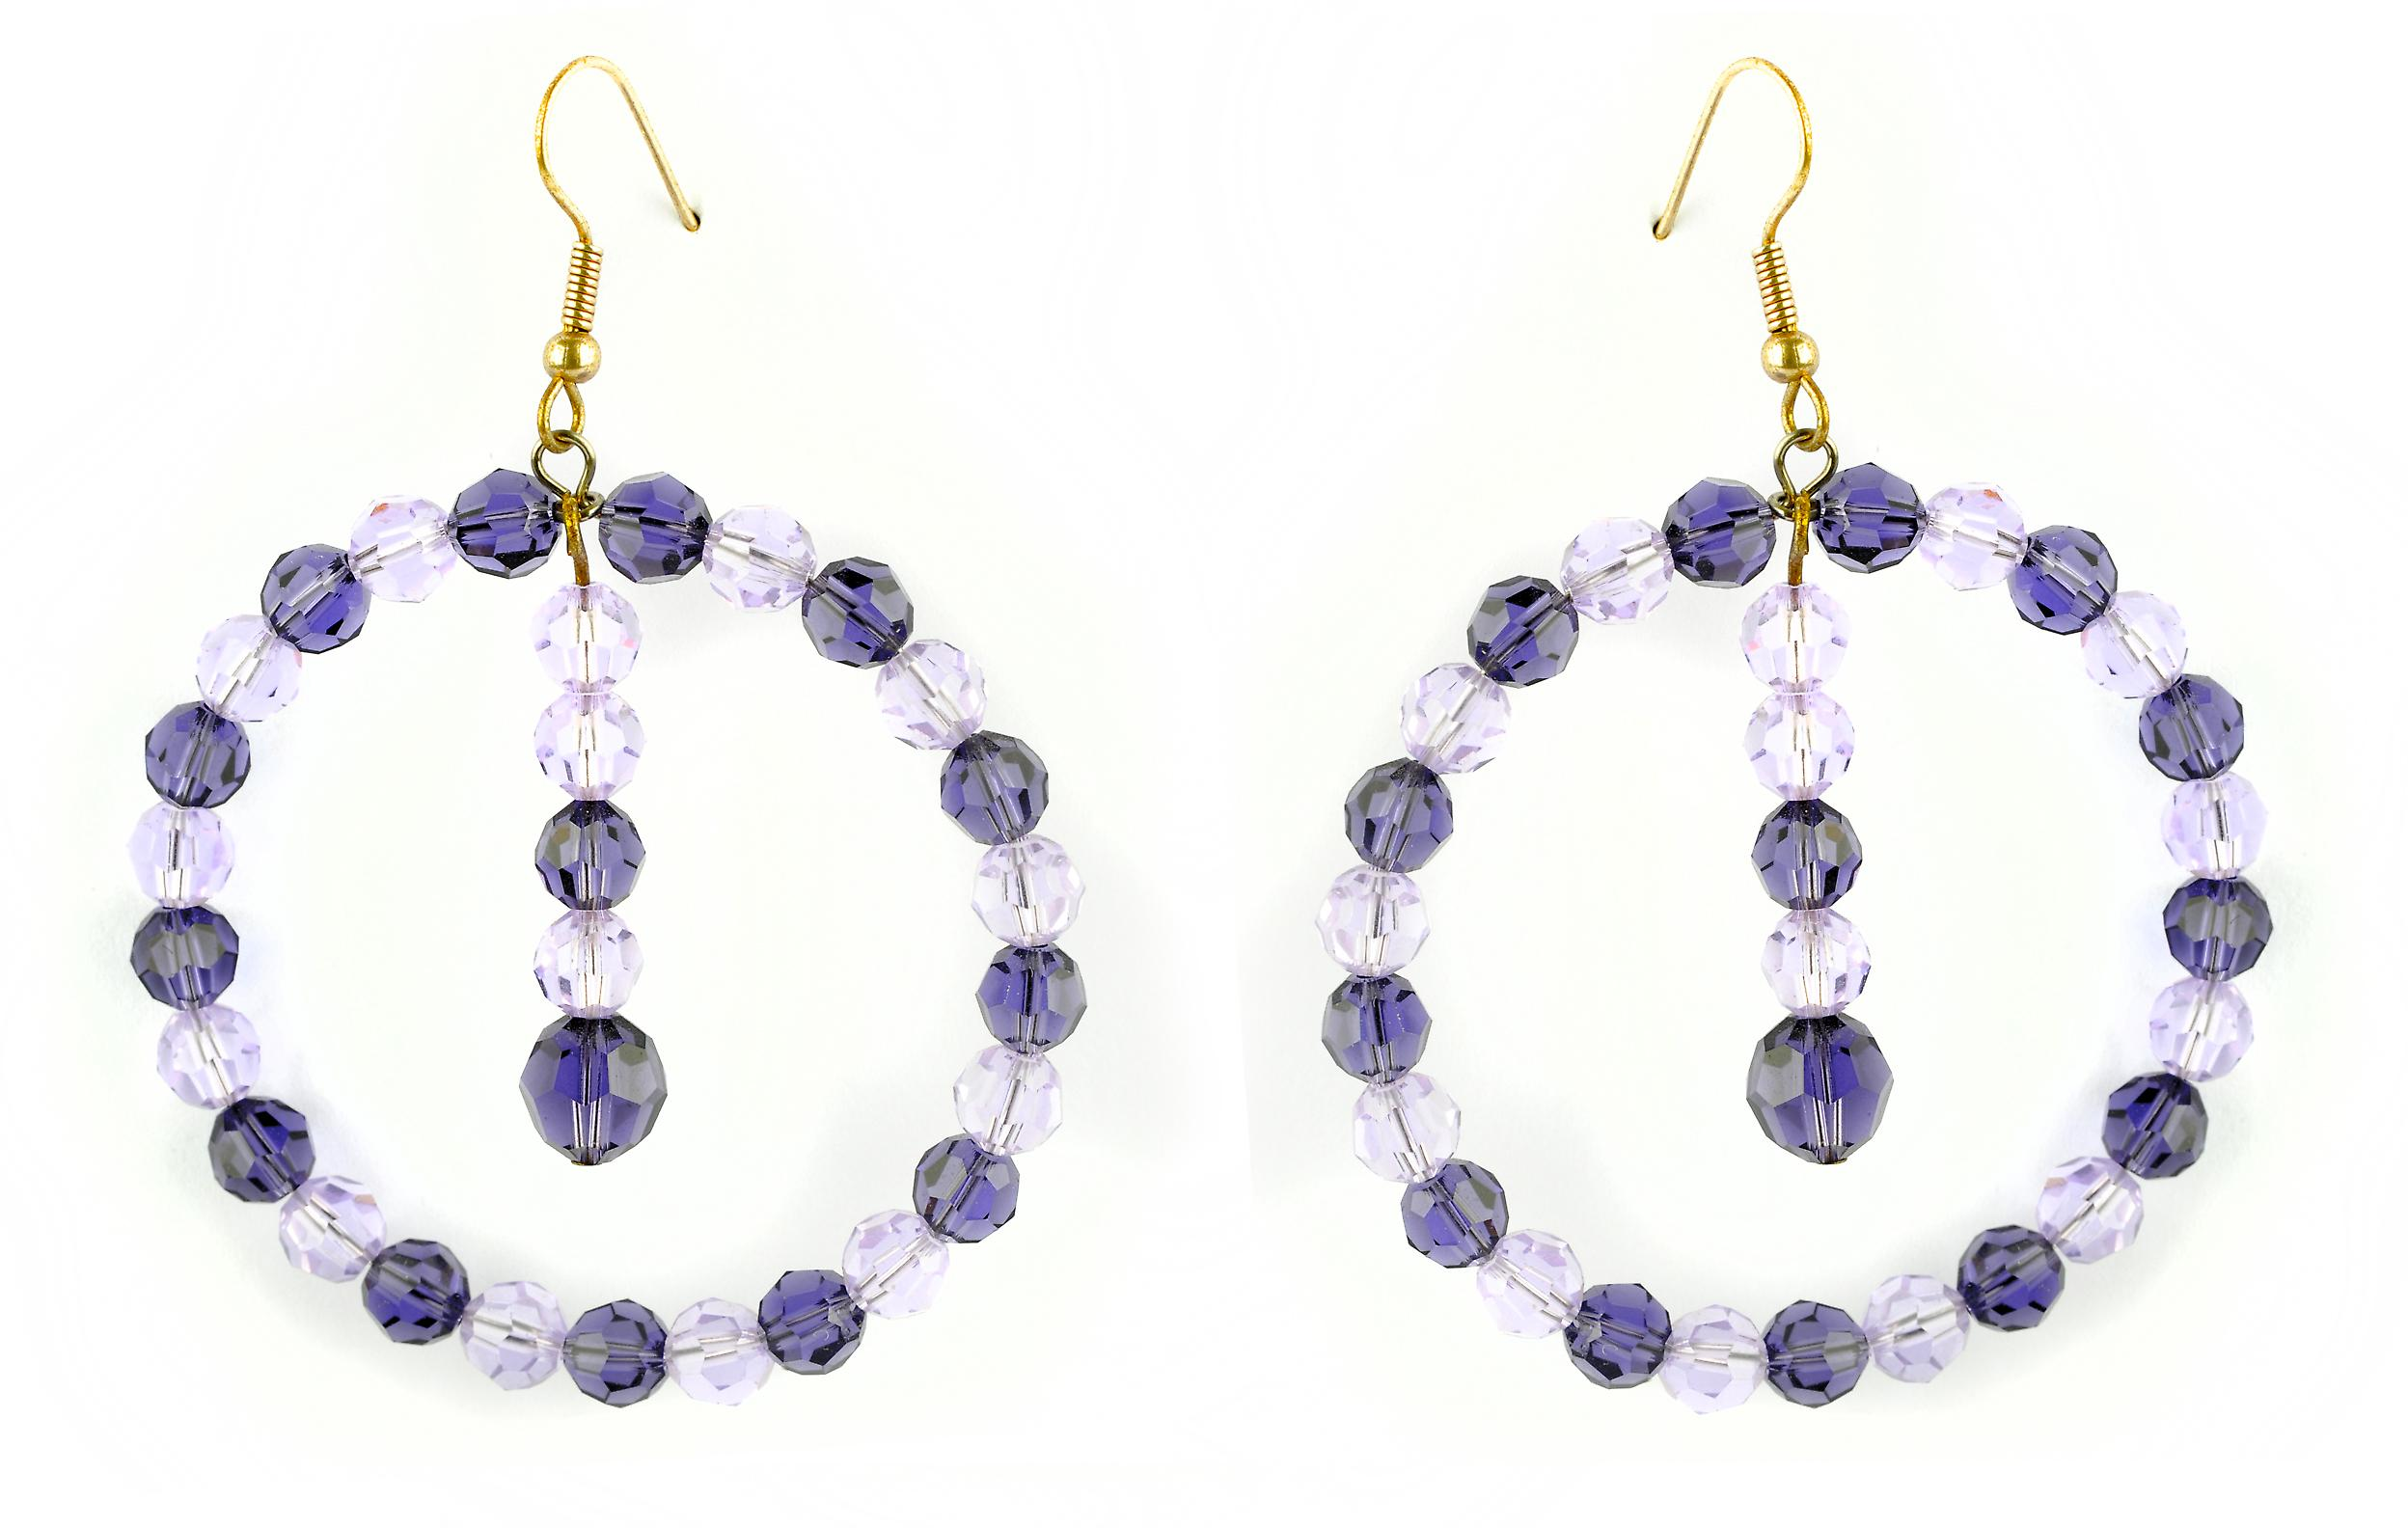 Waooh - Fashion Jewellery - WJ0718 - D'Oreille earrings with Swarovski Strass Purple Lila - Frame Colour Gold